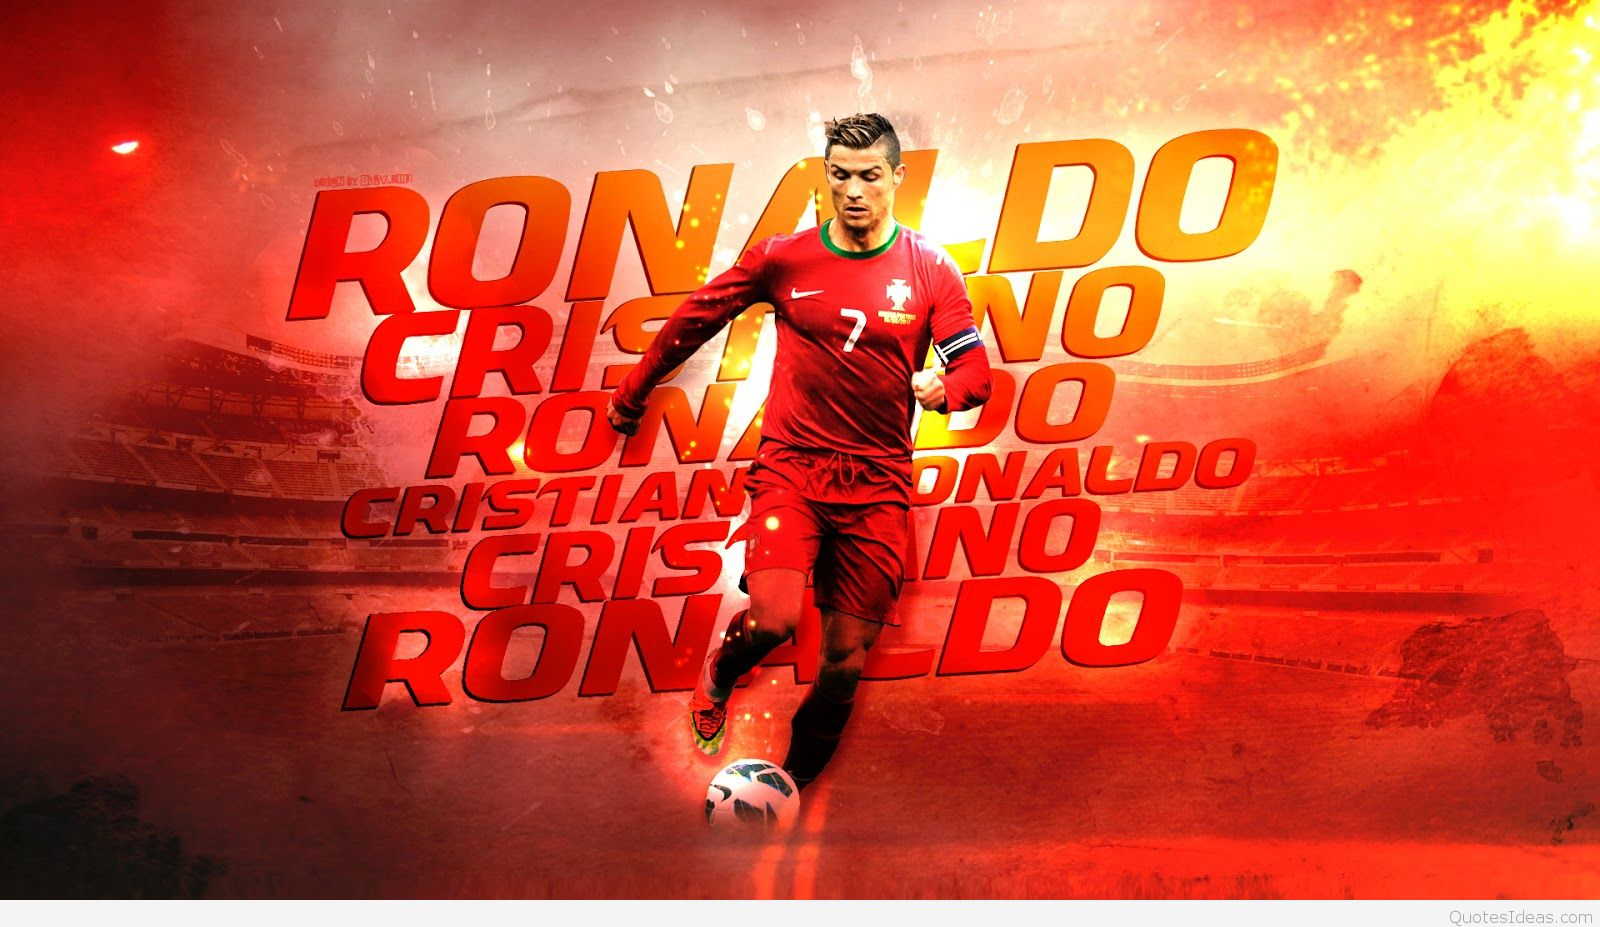 Free Download Cool Cristiano Ronaldo Backgrounds Wallpapers Hd